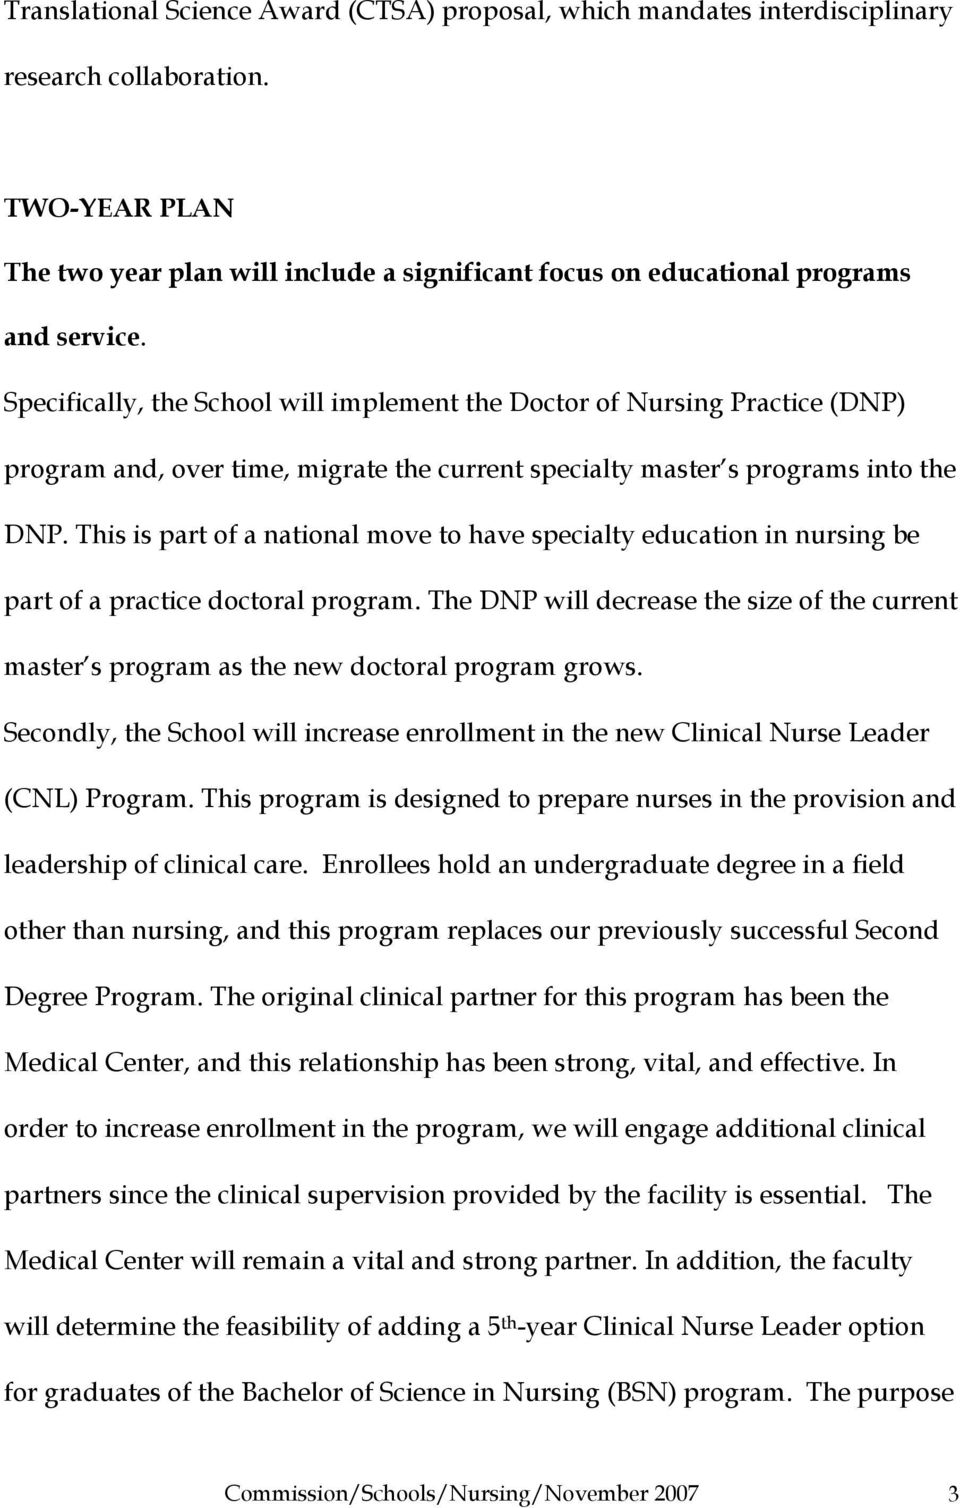 Specifically, the School will implement the Doctor of Nursing Practice (DNP) program and, over time, migrate the current specialty master s programs into the DNP.